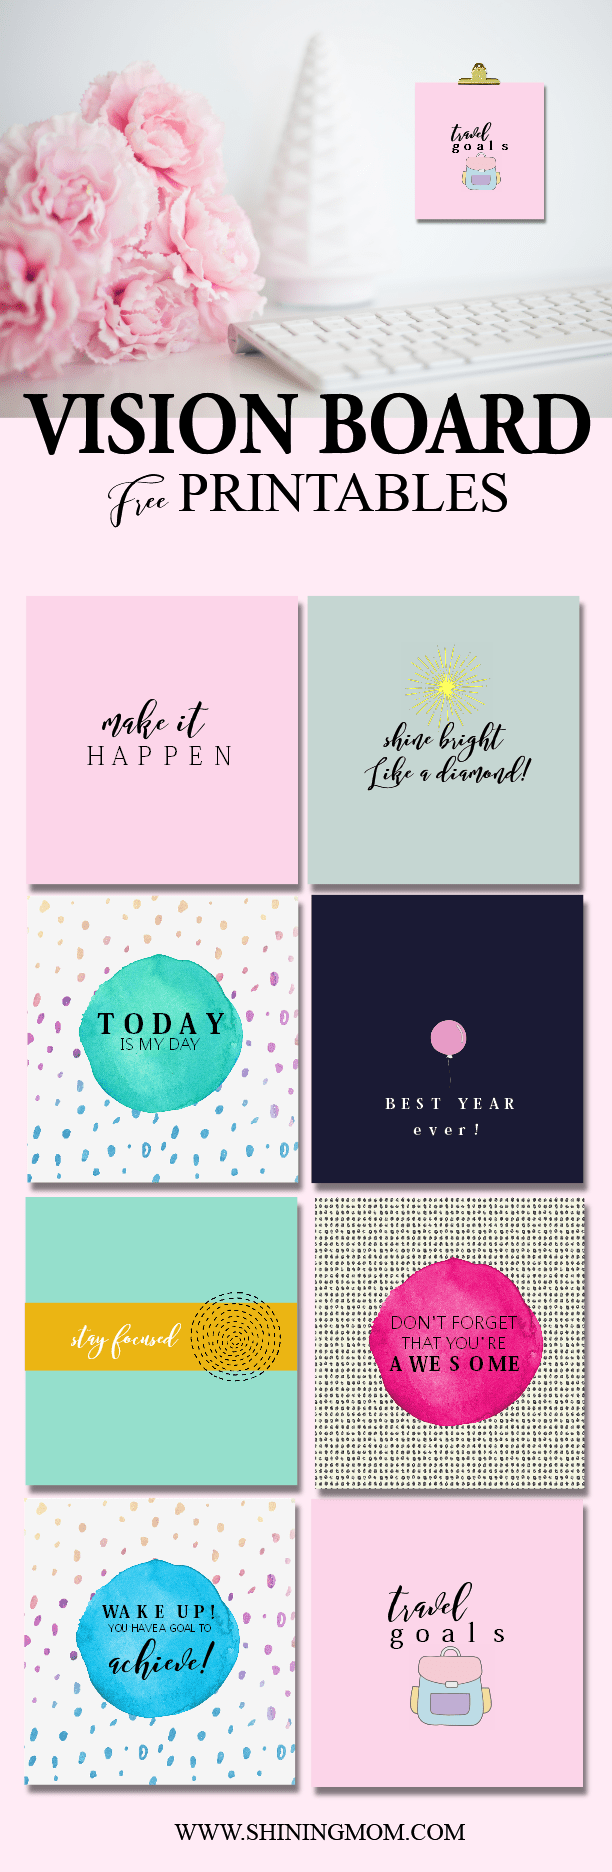 Vision board free printables for Vision board templates free